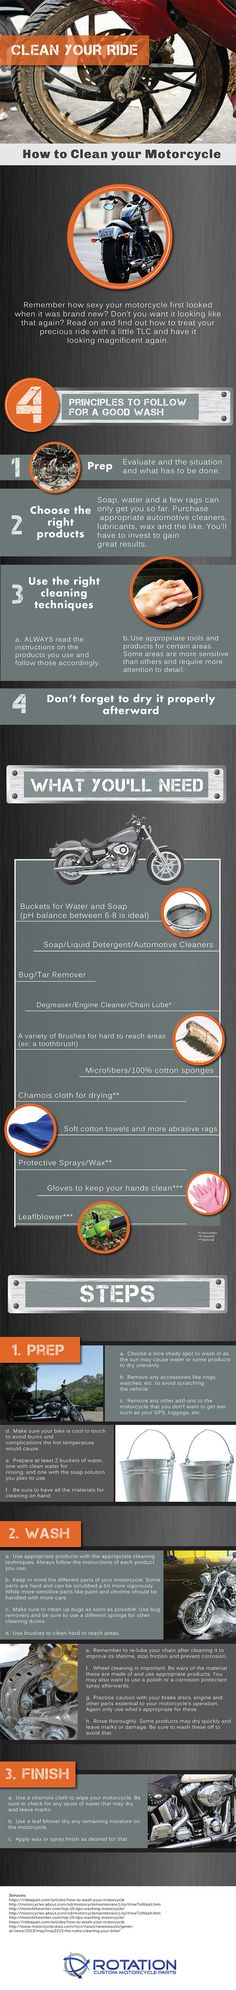 How to Clean your Motorcycle- Infographic  #clean #motorcycle #infographic…